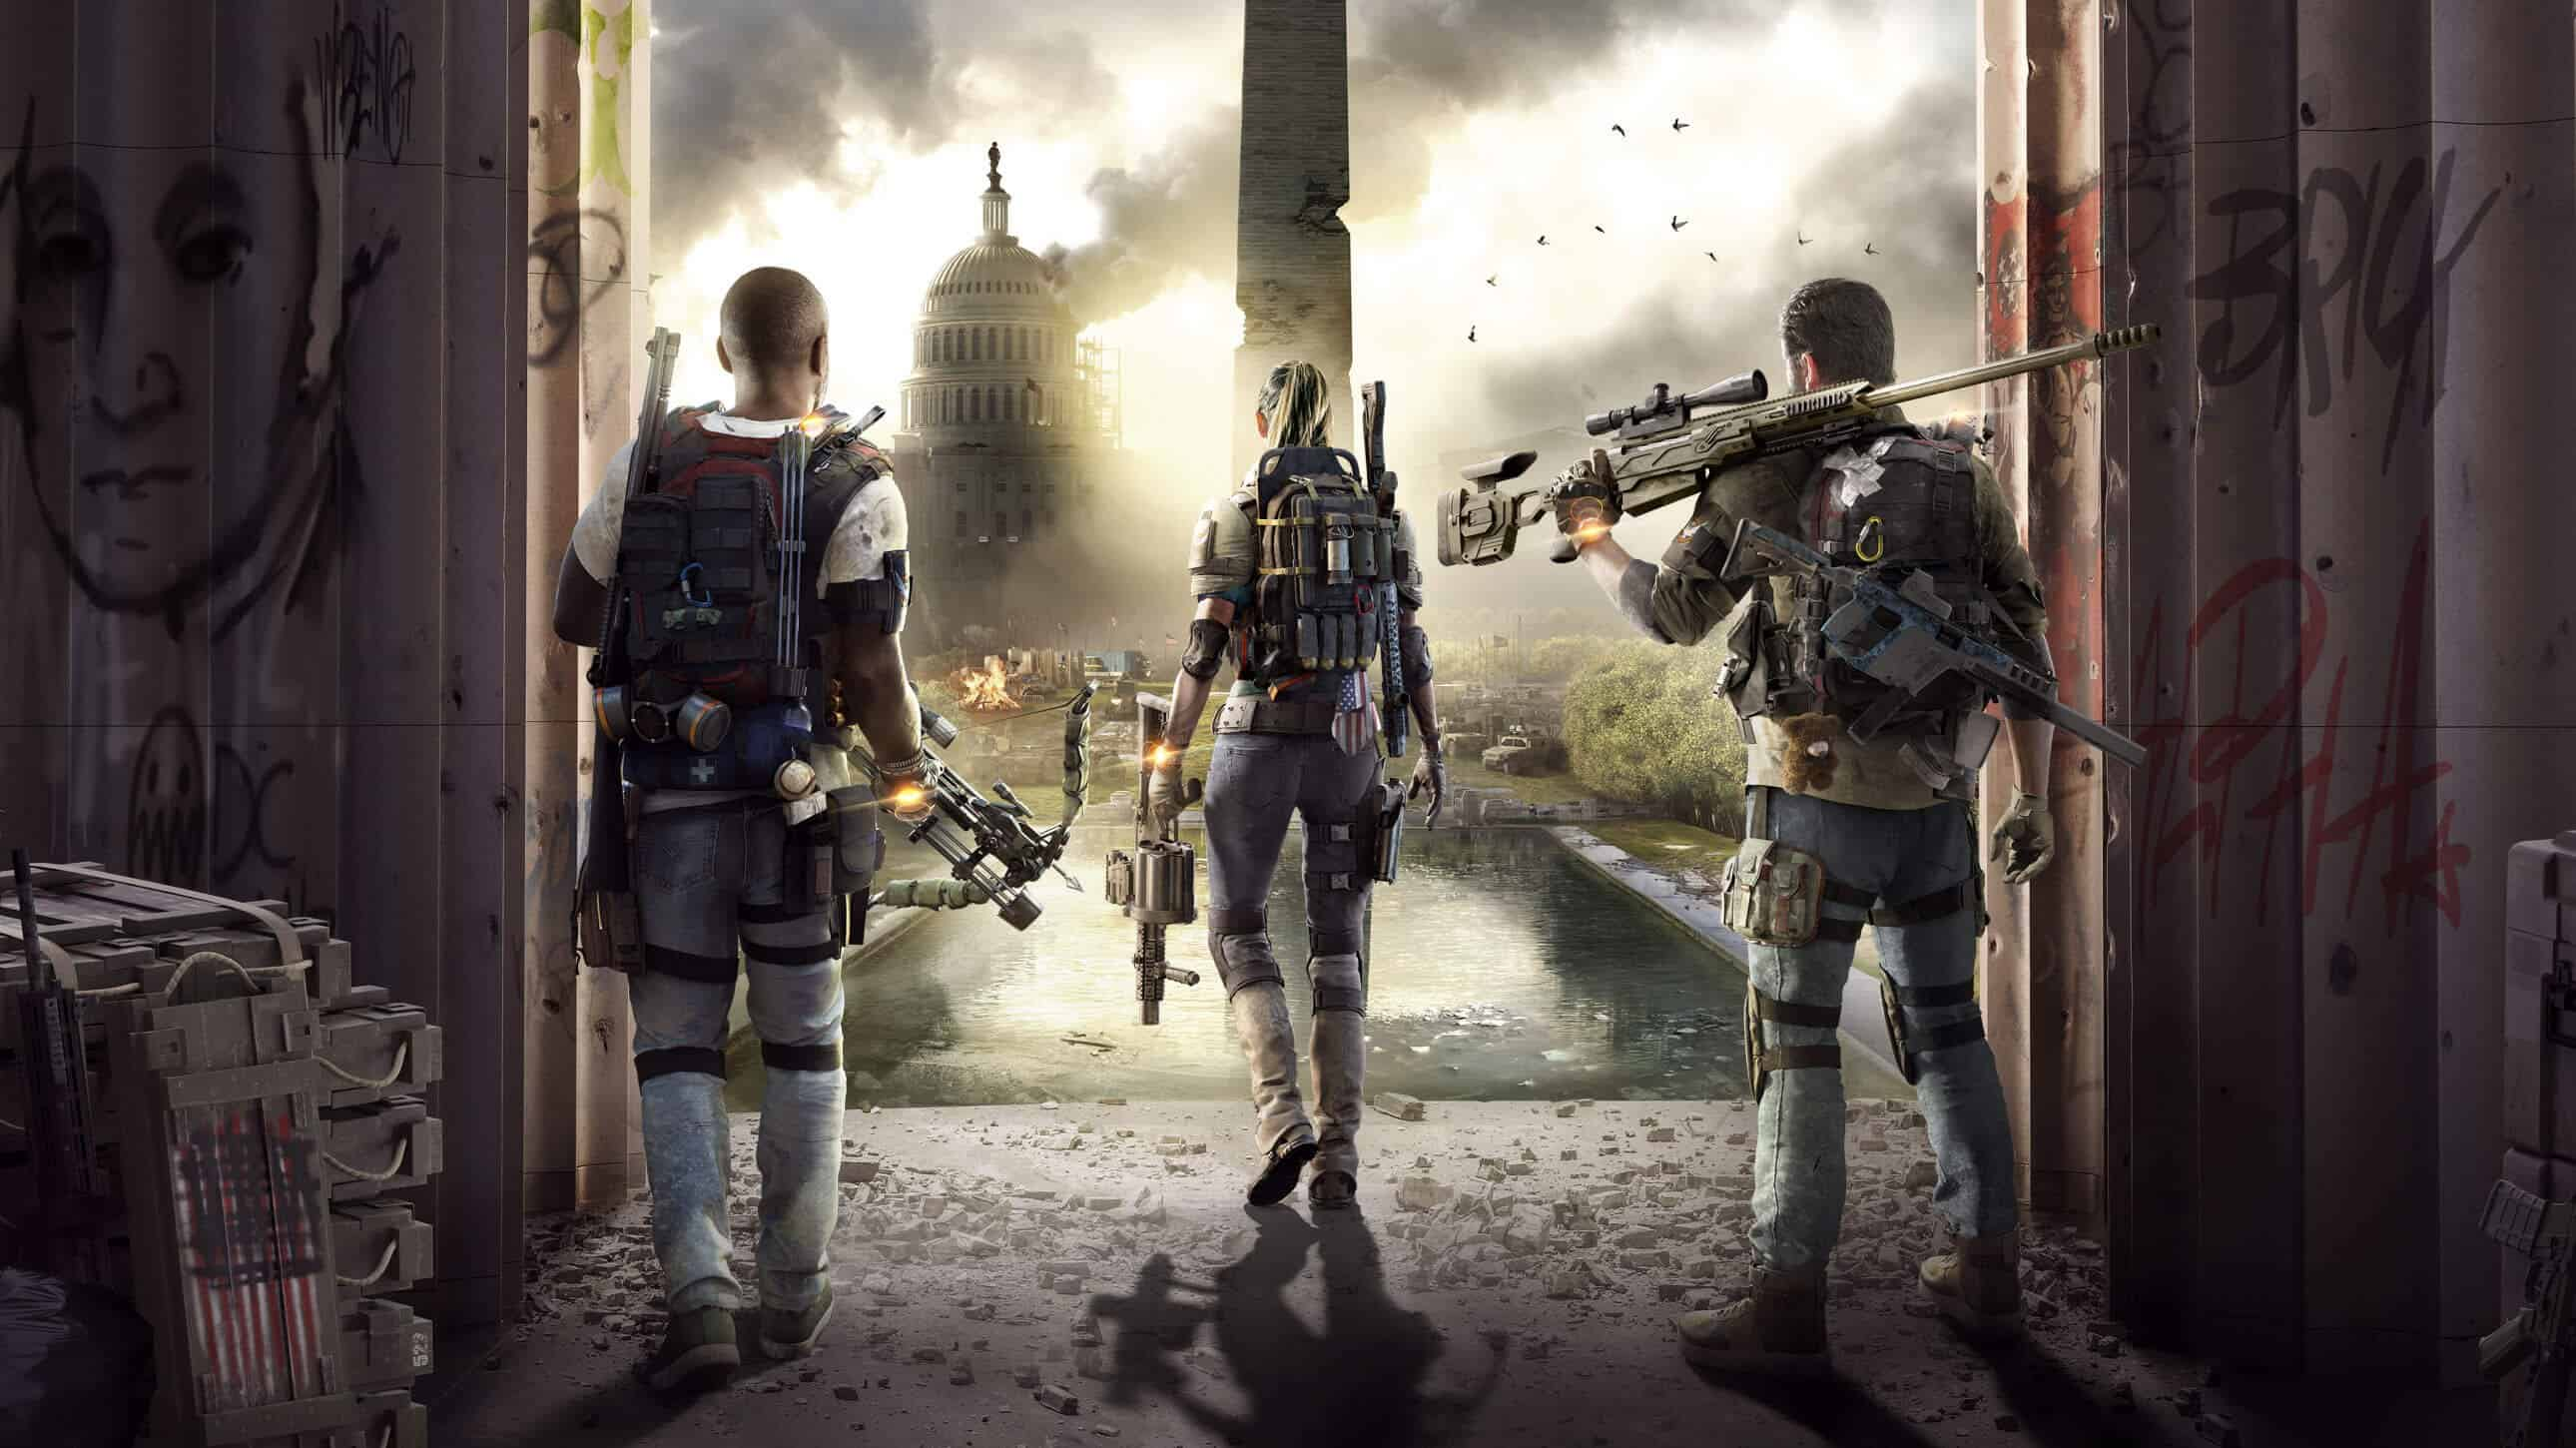 [Epic Games Store] Tom Clancy's Ghost Recon Wildlands ($14.99 /70% off), Watch_Dogs® 2 ($14.99 /75% off), Far Cry Primal ($14.99 /70% off). $4.99 each at checkout until 13/06. : GameDeals